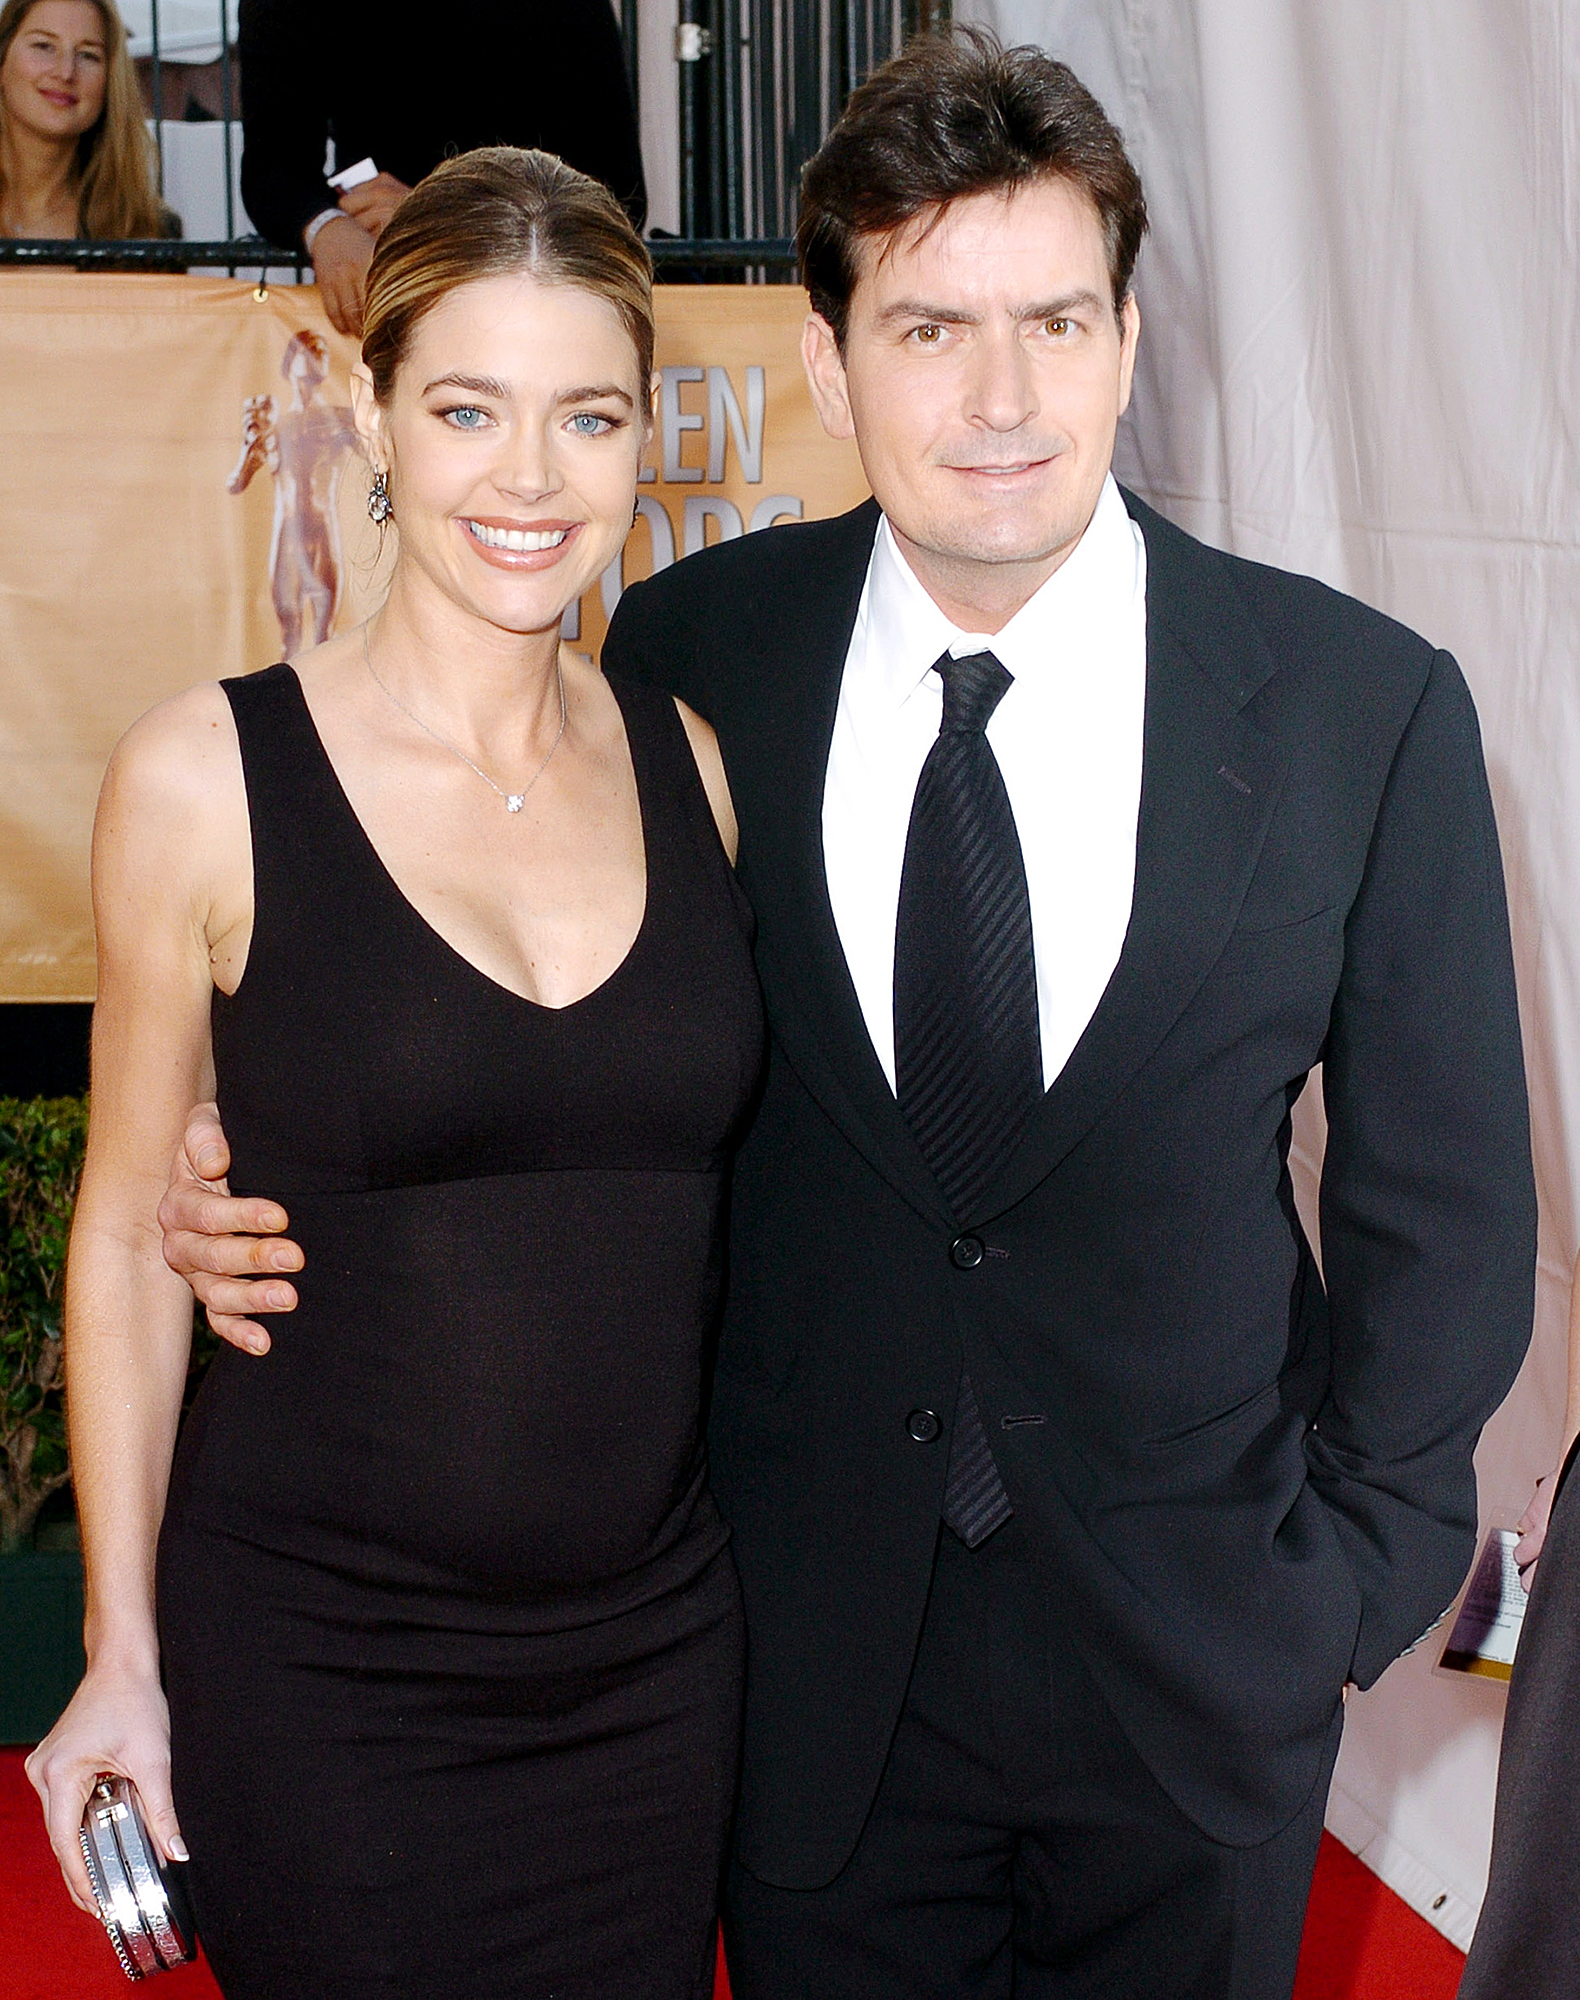 Communication on this topic: Maitland ward nude photo, charlie-sheen-denise-richards-is-a-sad/